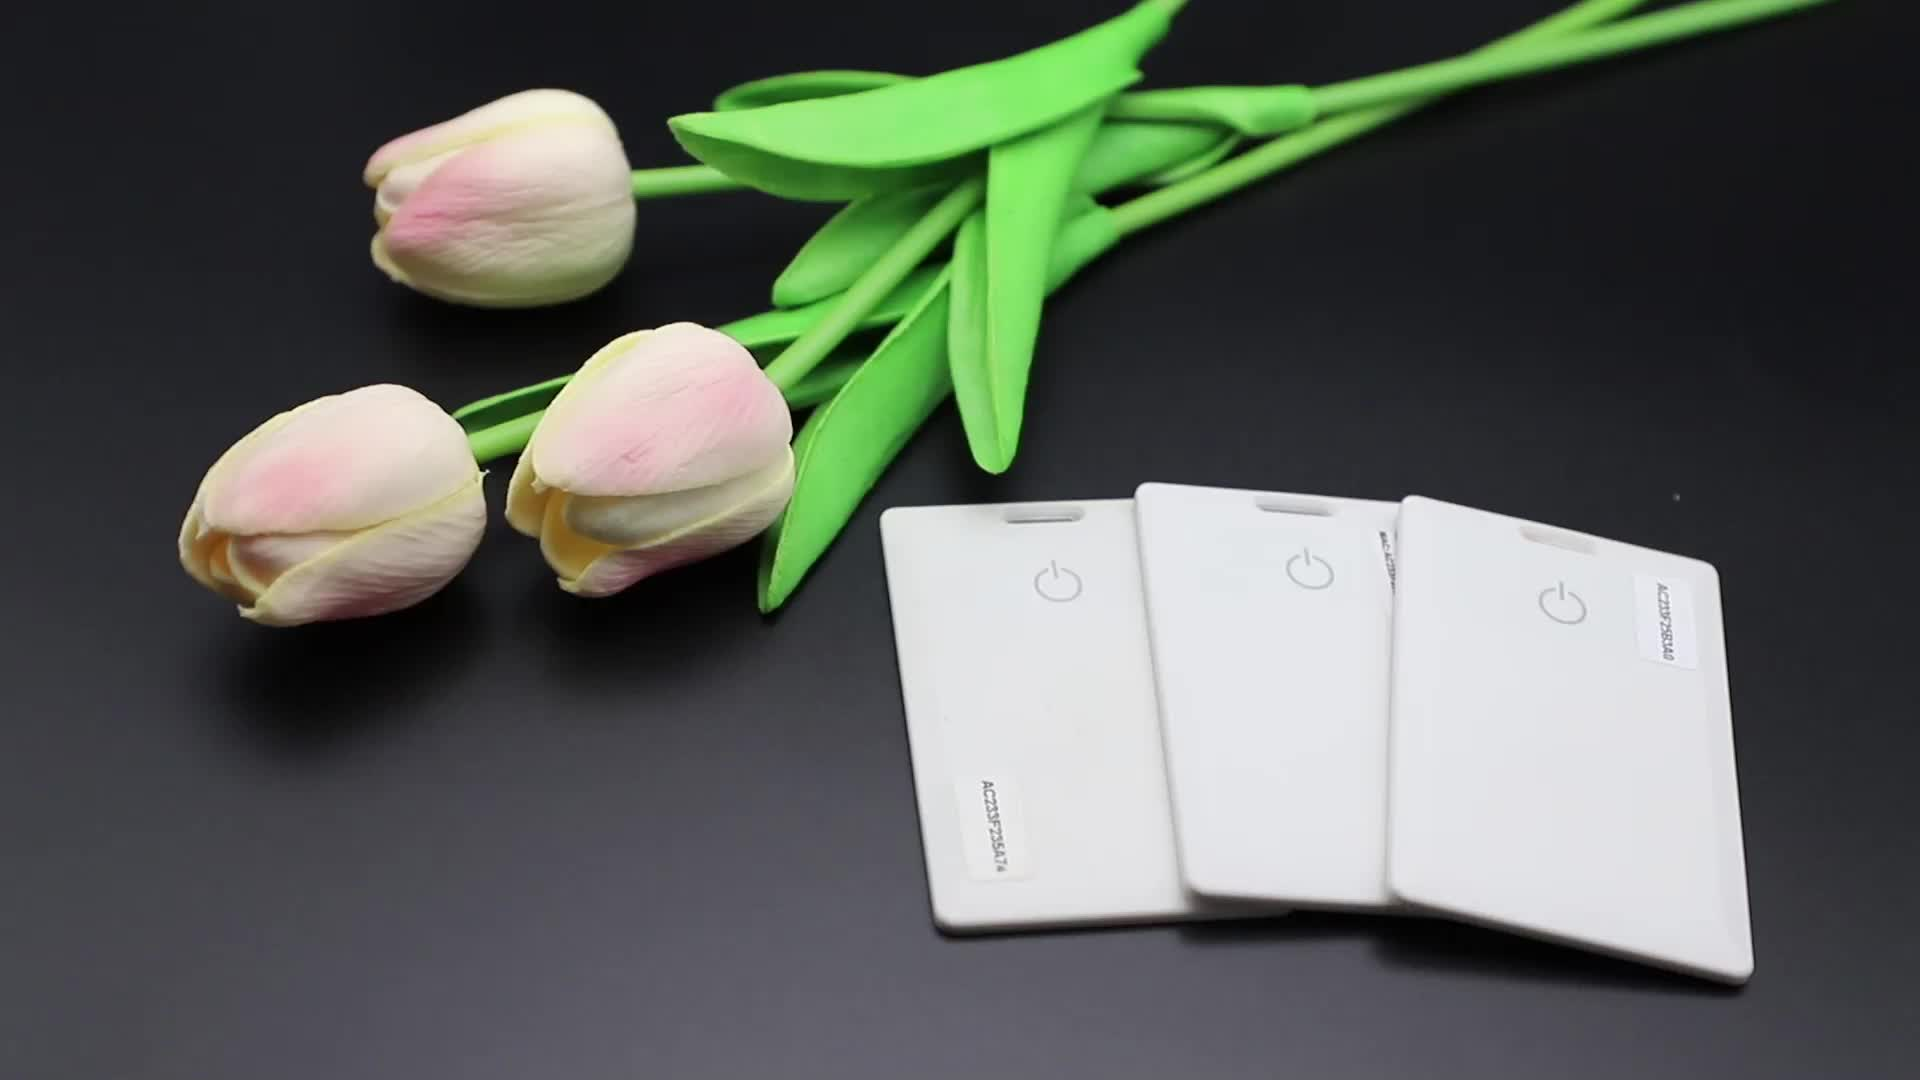 New Arrival BLE Beacon C7 Thiness Beacon Card